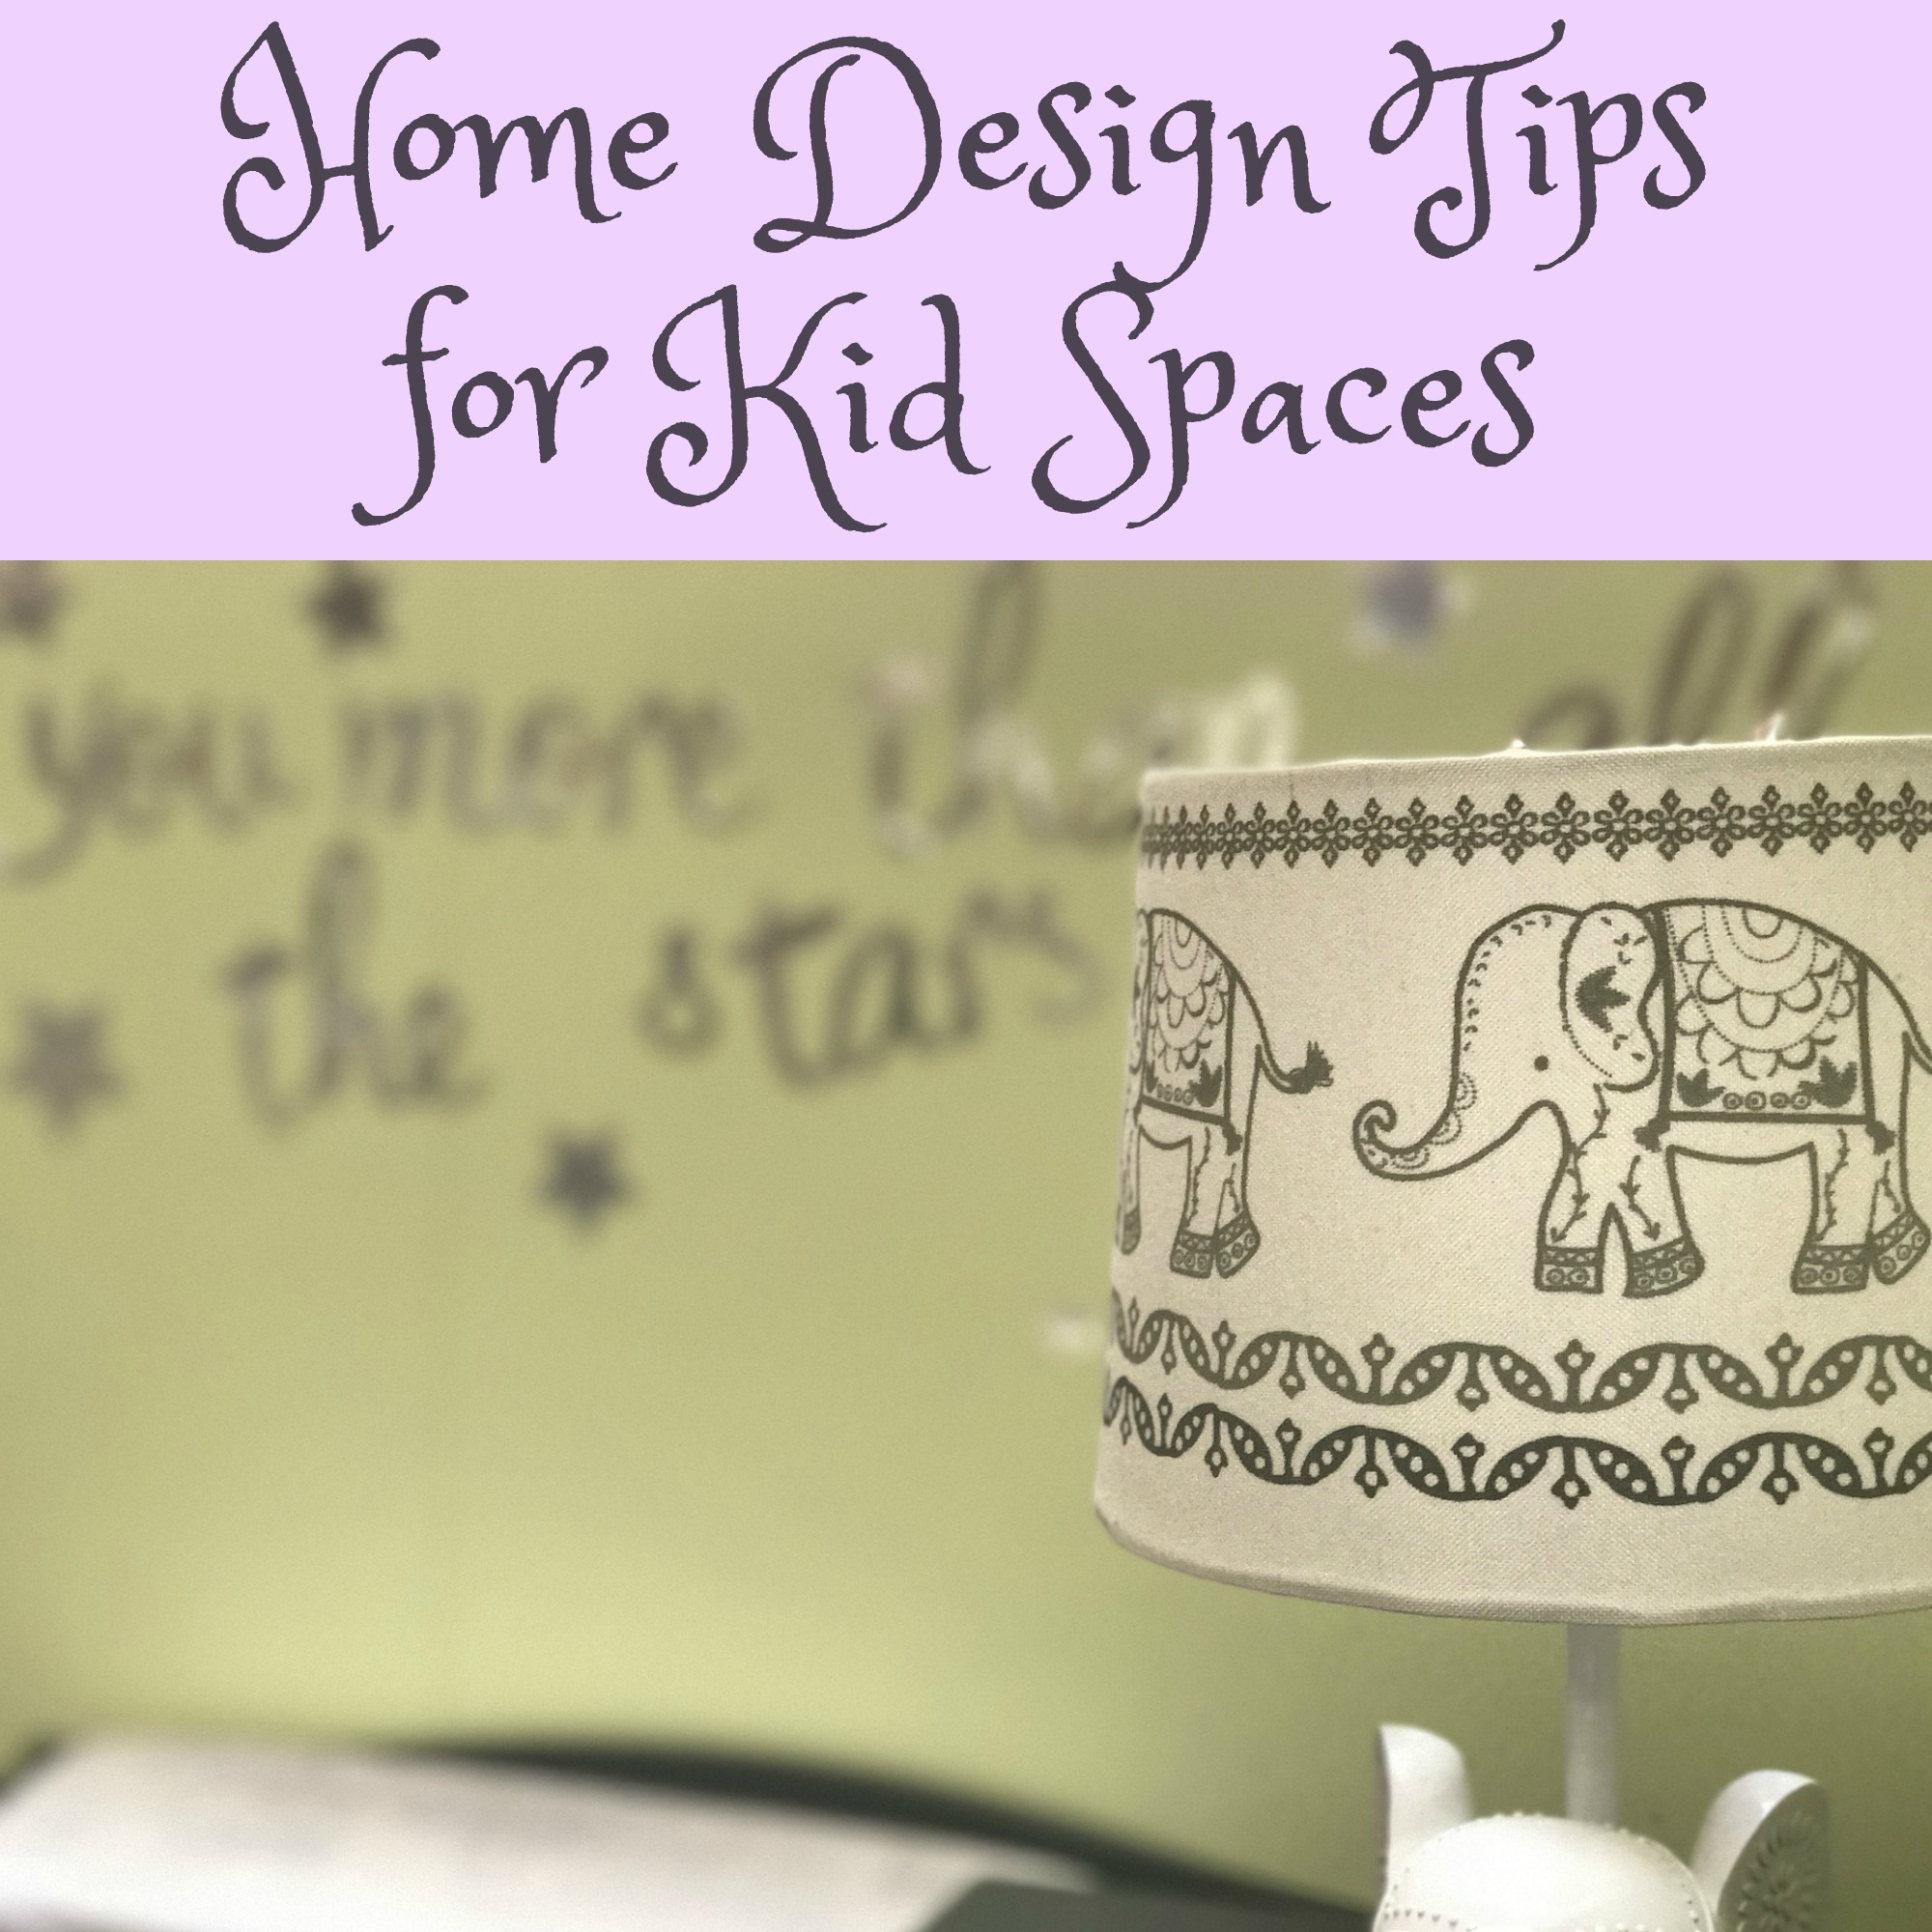 Home Design Tips for Kid Spaces